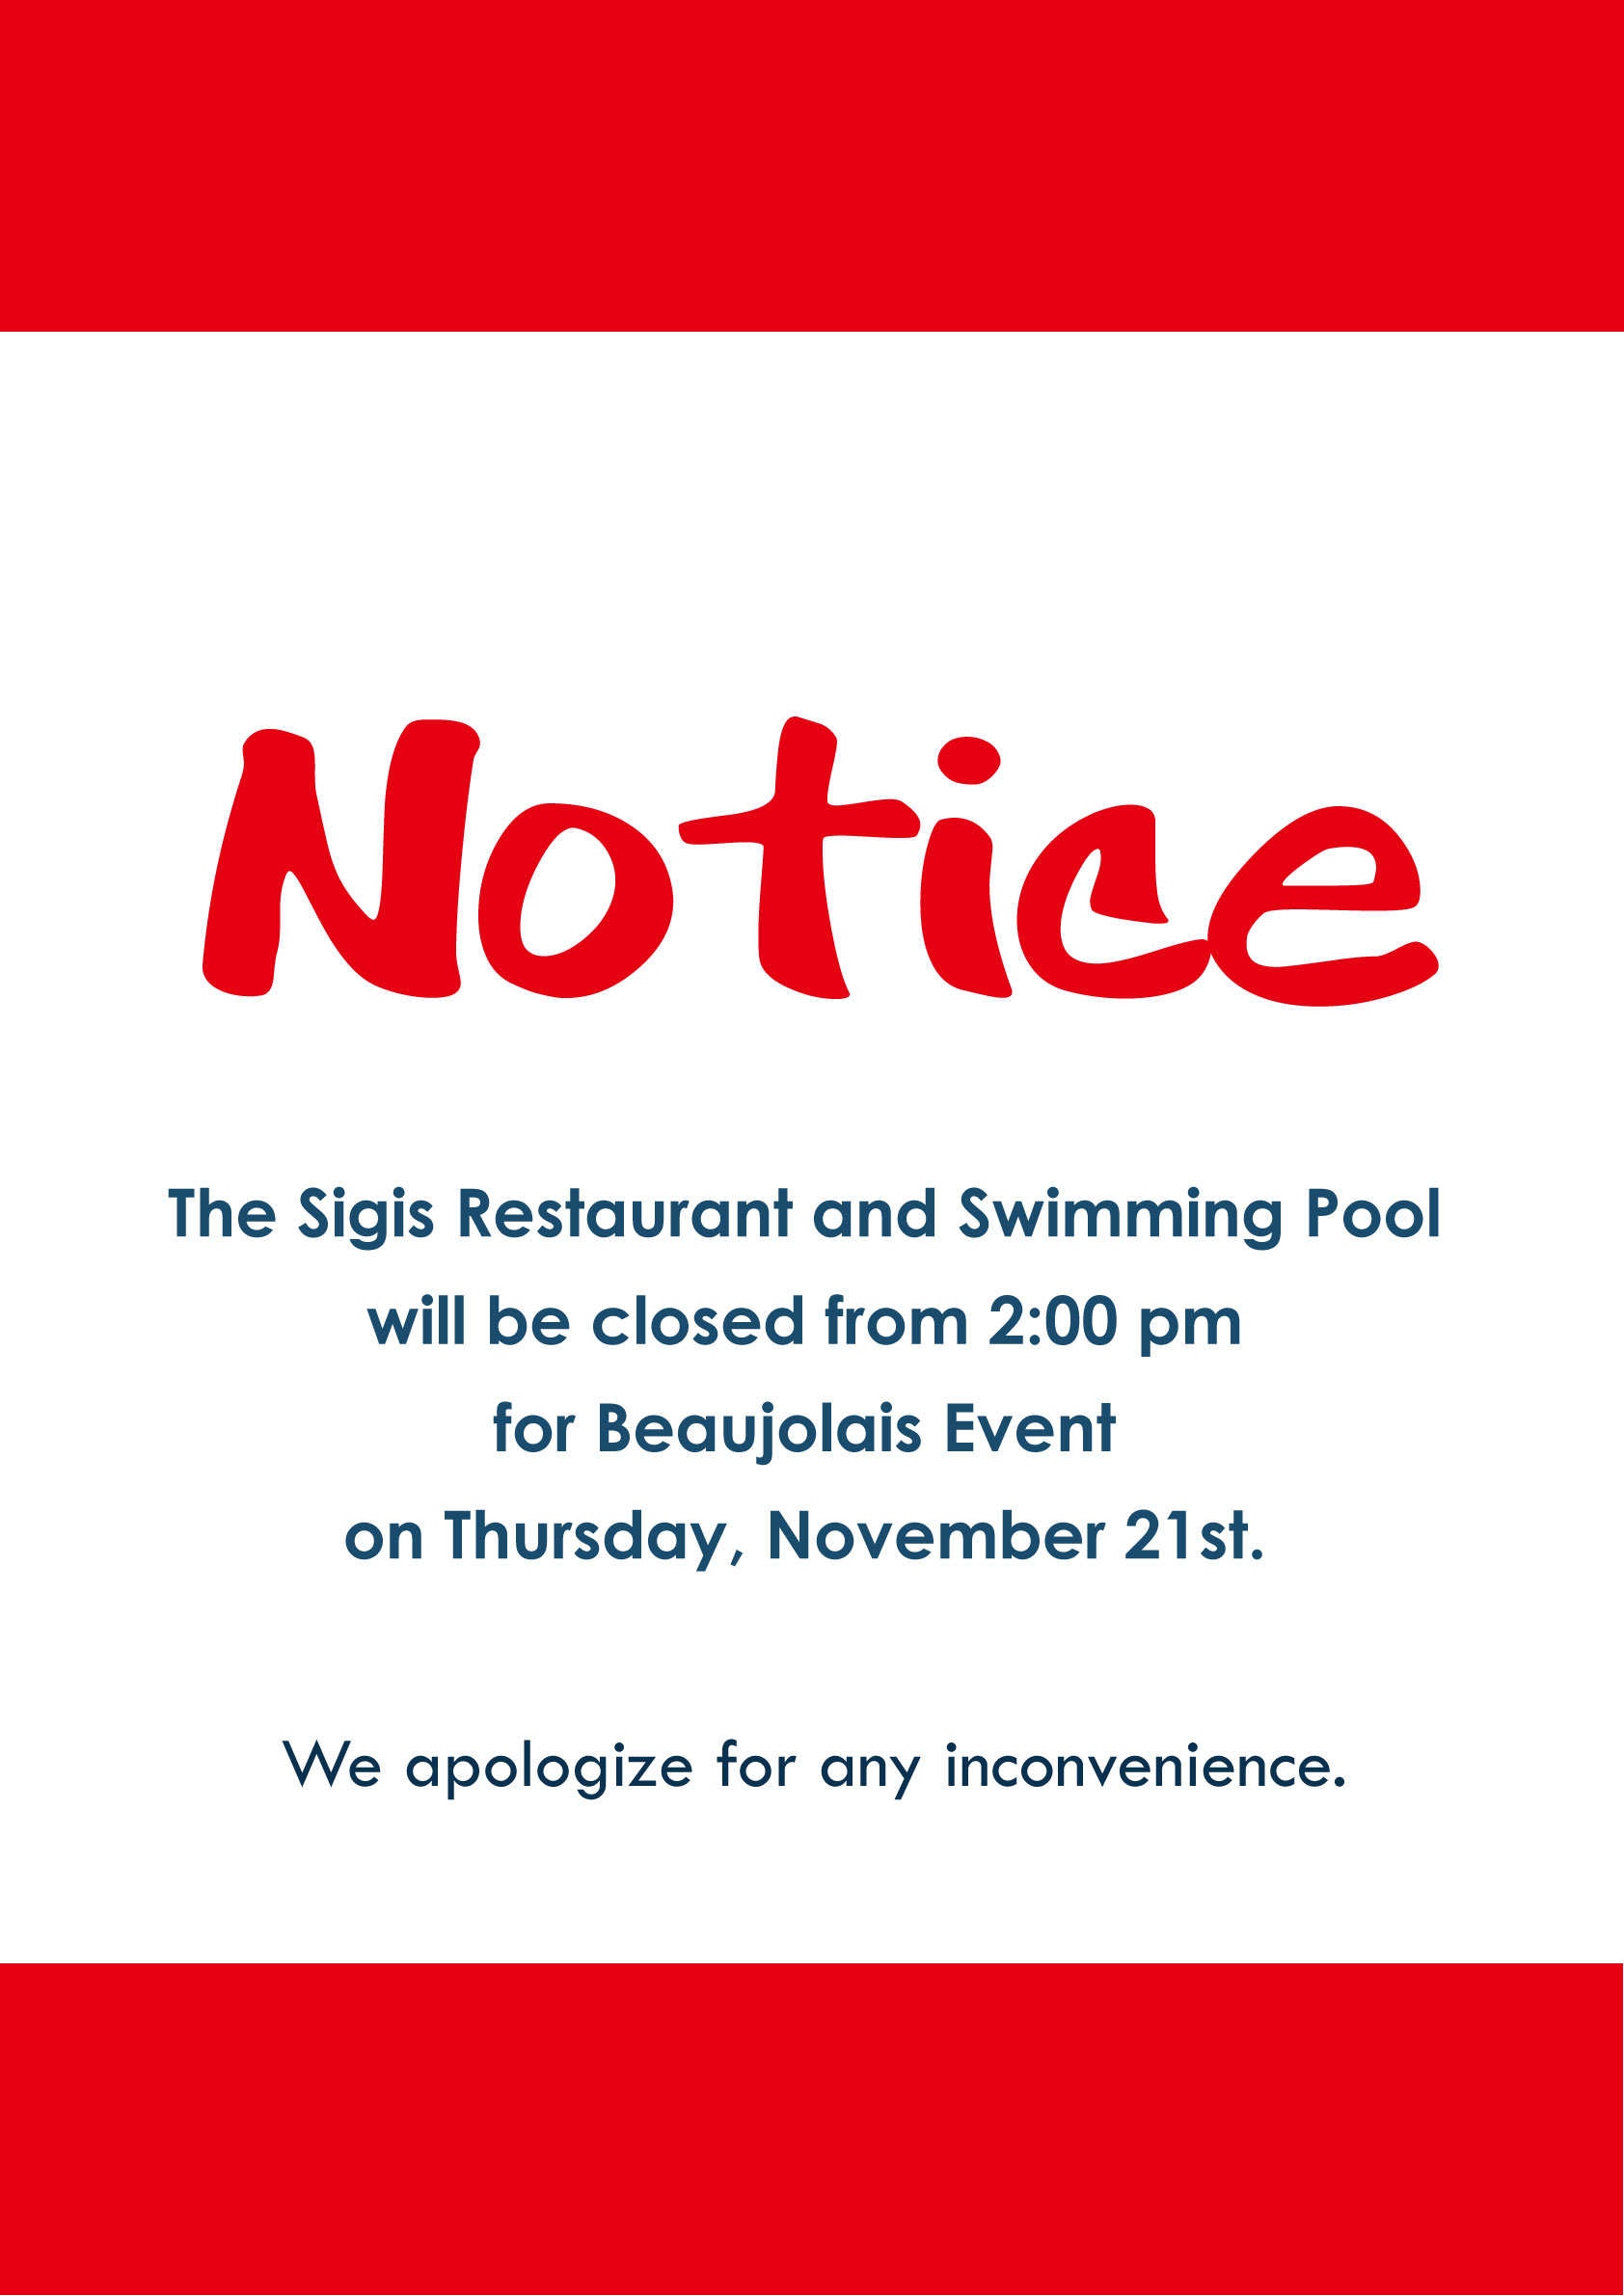 notice sigis restaurant and swimming pool will be closed for beaujolais event on thursday